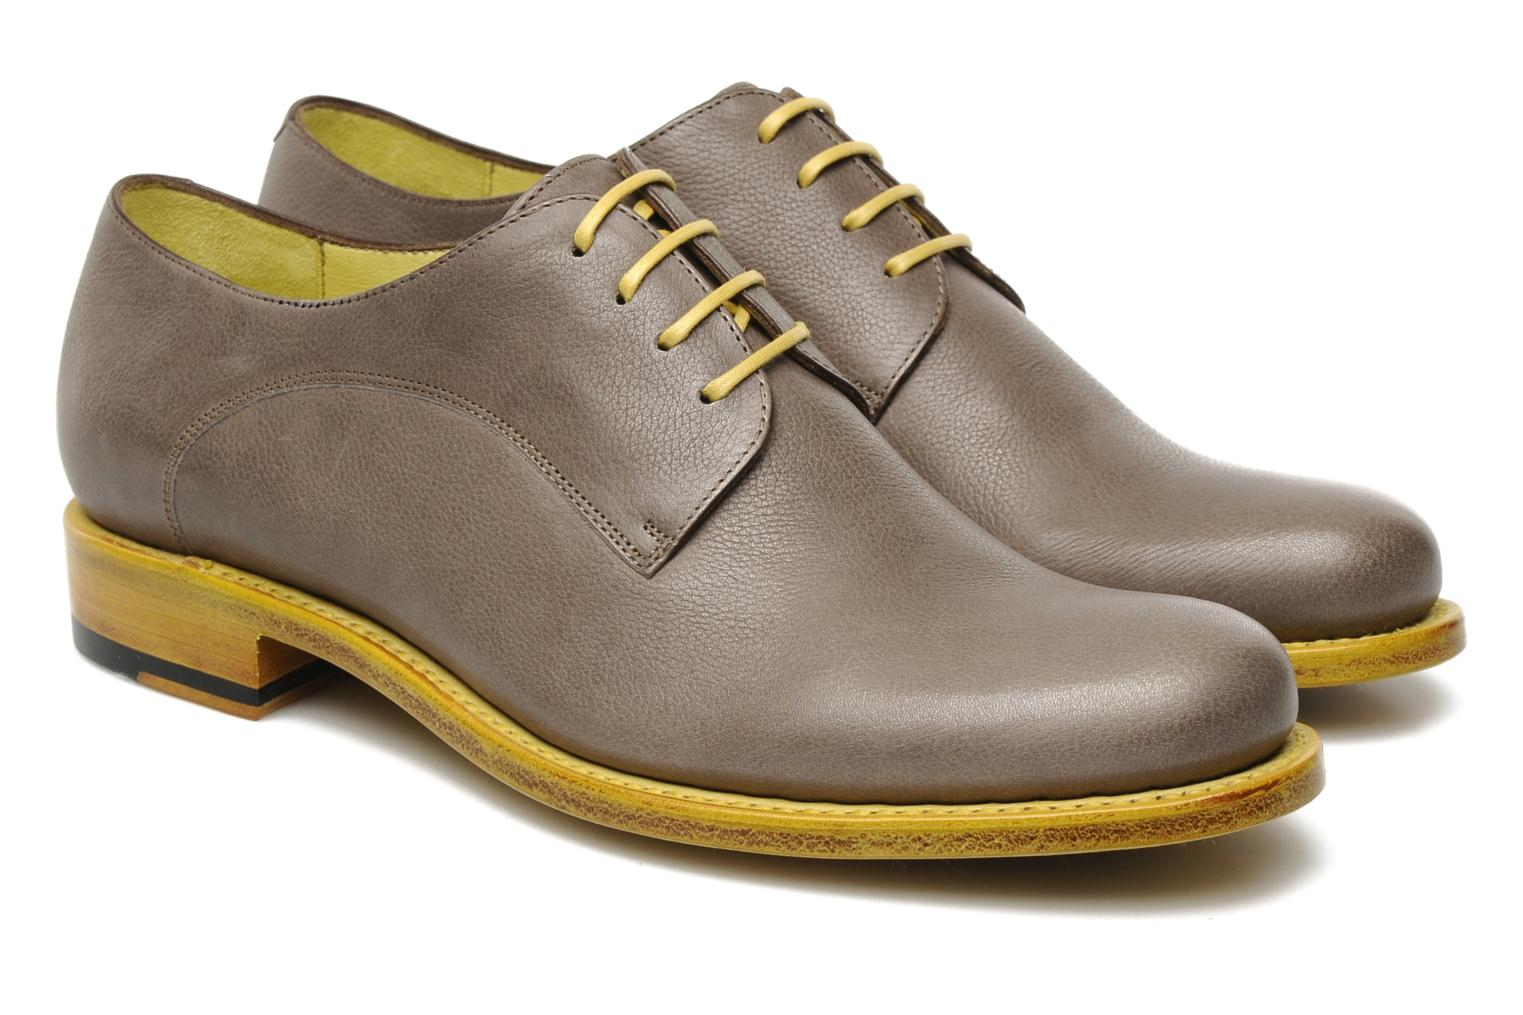 Arely derby Corvette Taupe/Jaune